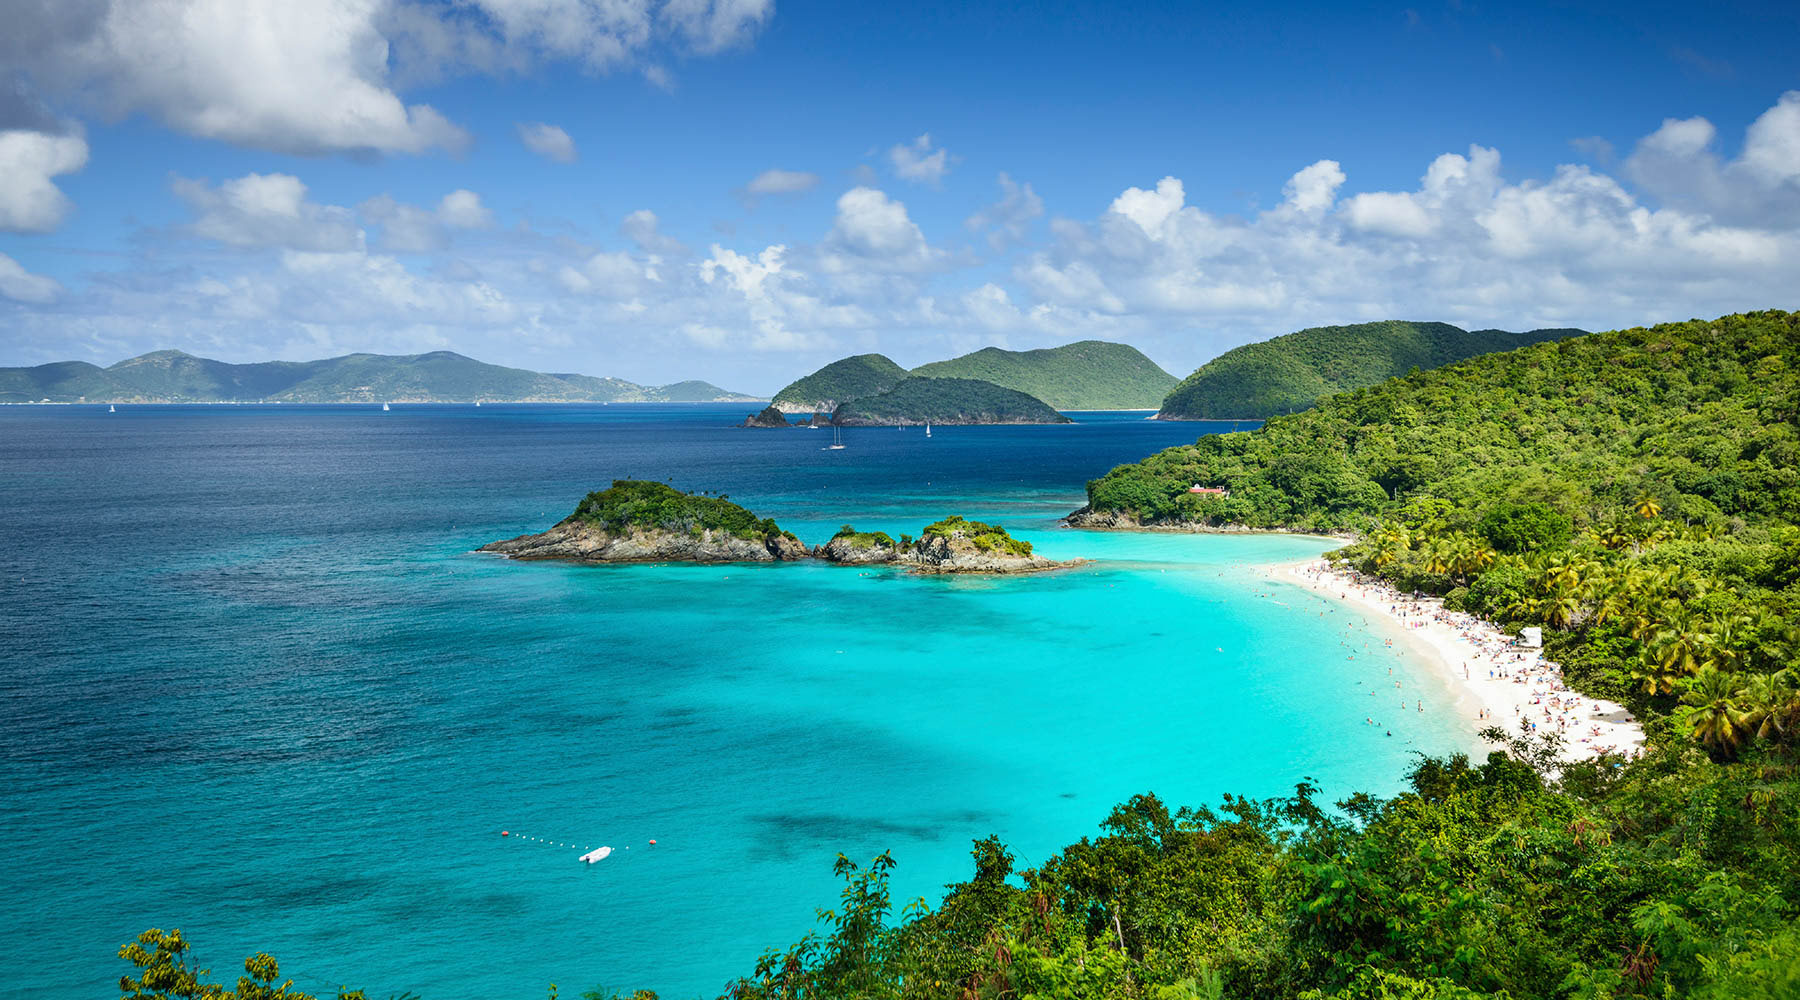 Photos from Spring Bay, Virgin Gorda, British Virgin Islands